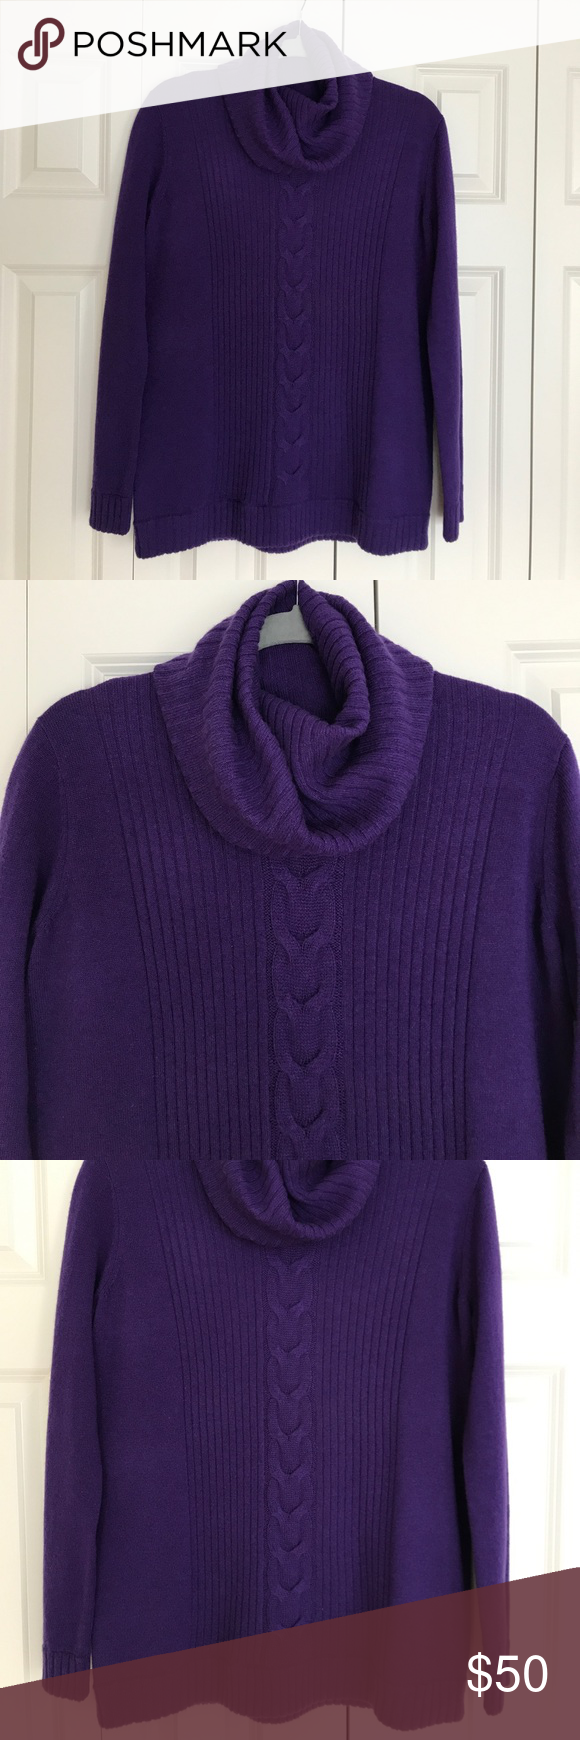 NWT TOBEY GREY PURPLE CASHMERE SWEATER NWT Tobey Grey Purple ...